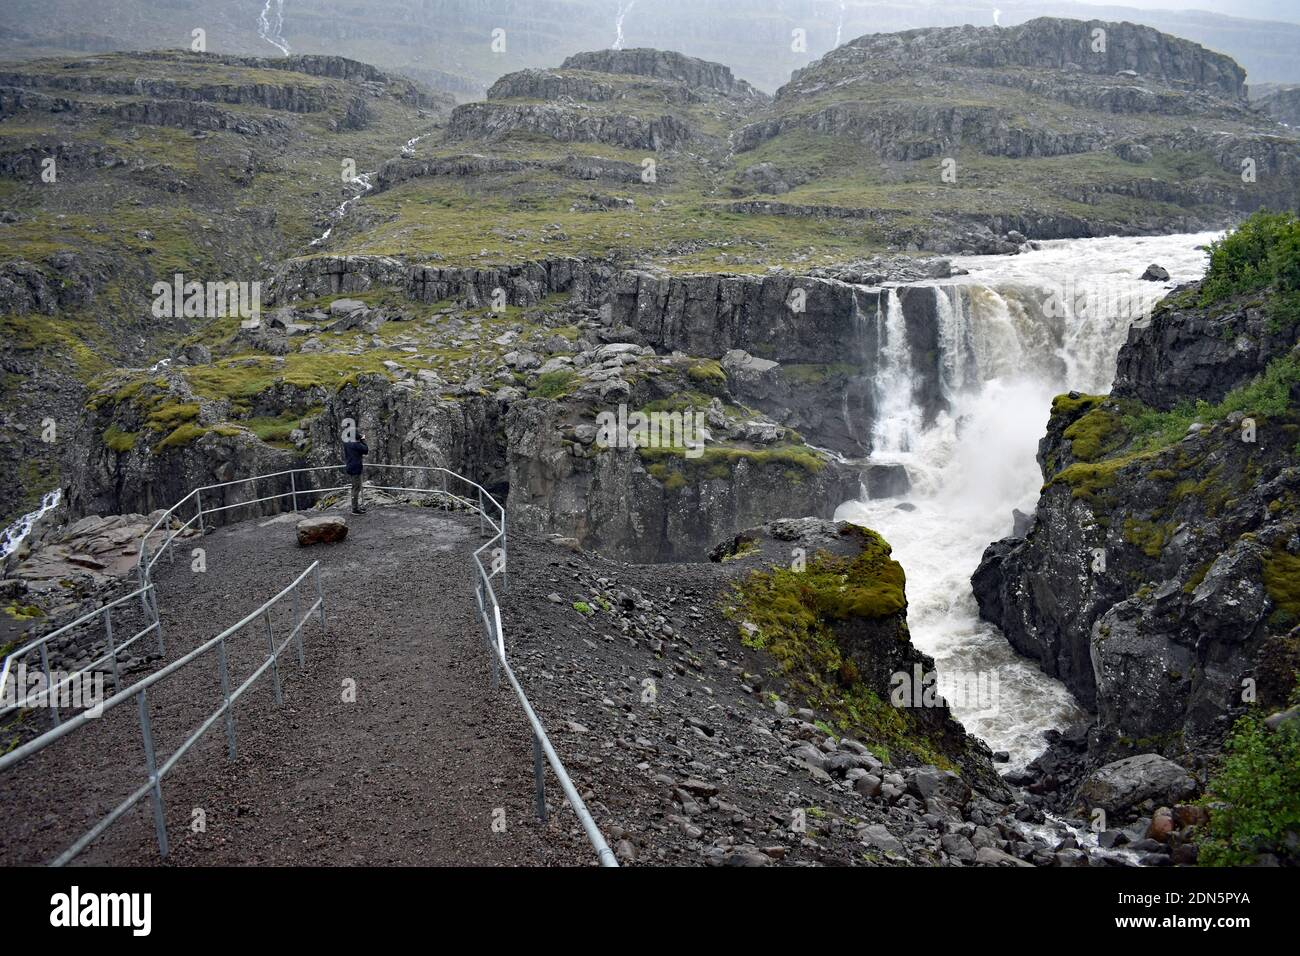 A male wearing black stands behind railings in the viewing area for Nykurhylsfoss (Sveinsstekksfoss) near to Djupivogur in the Eastfjords of Iceland. Stock Photo